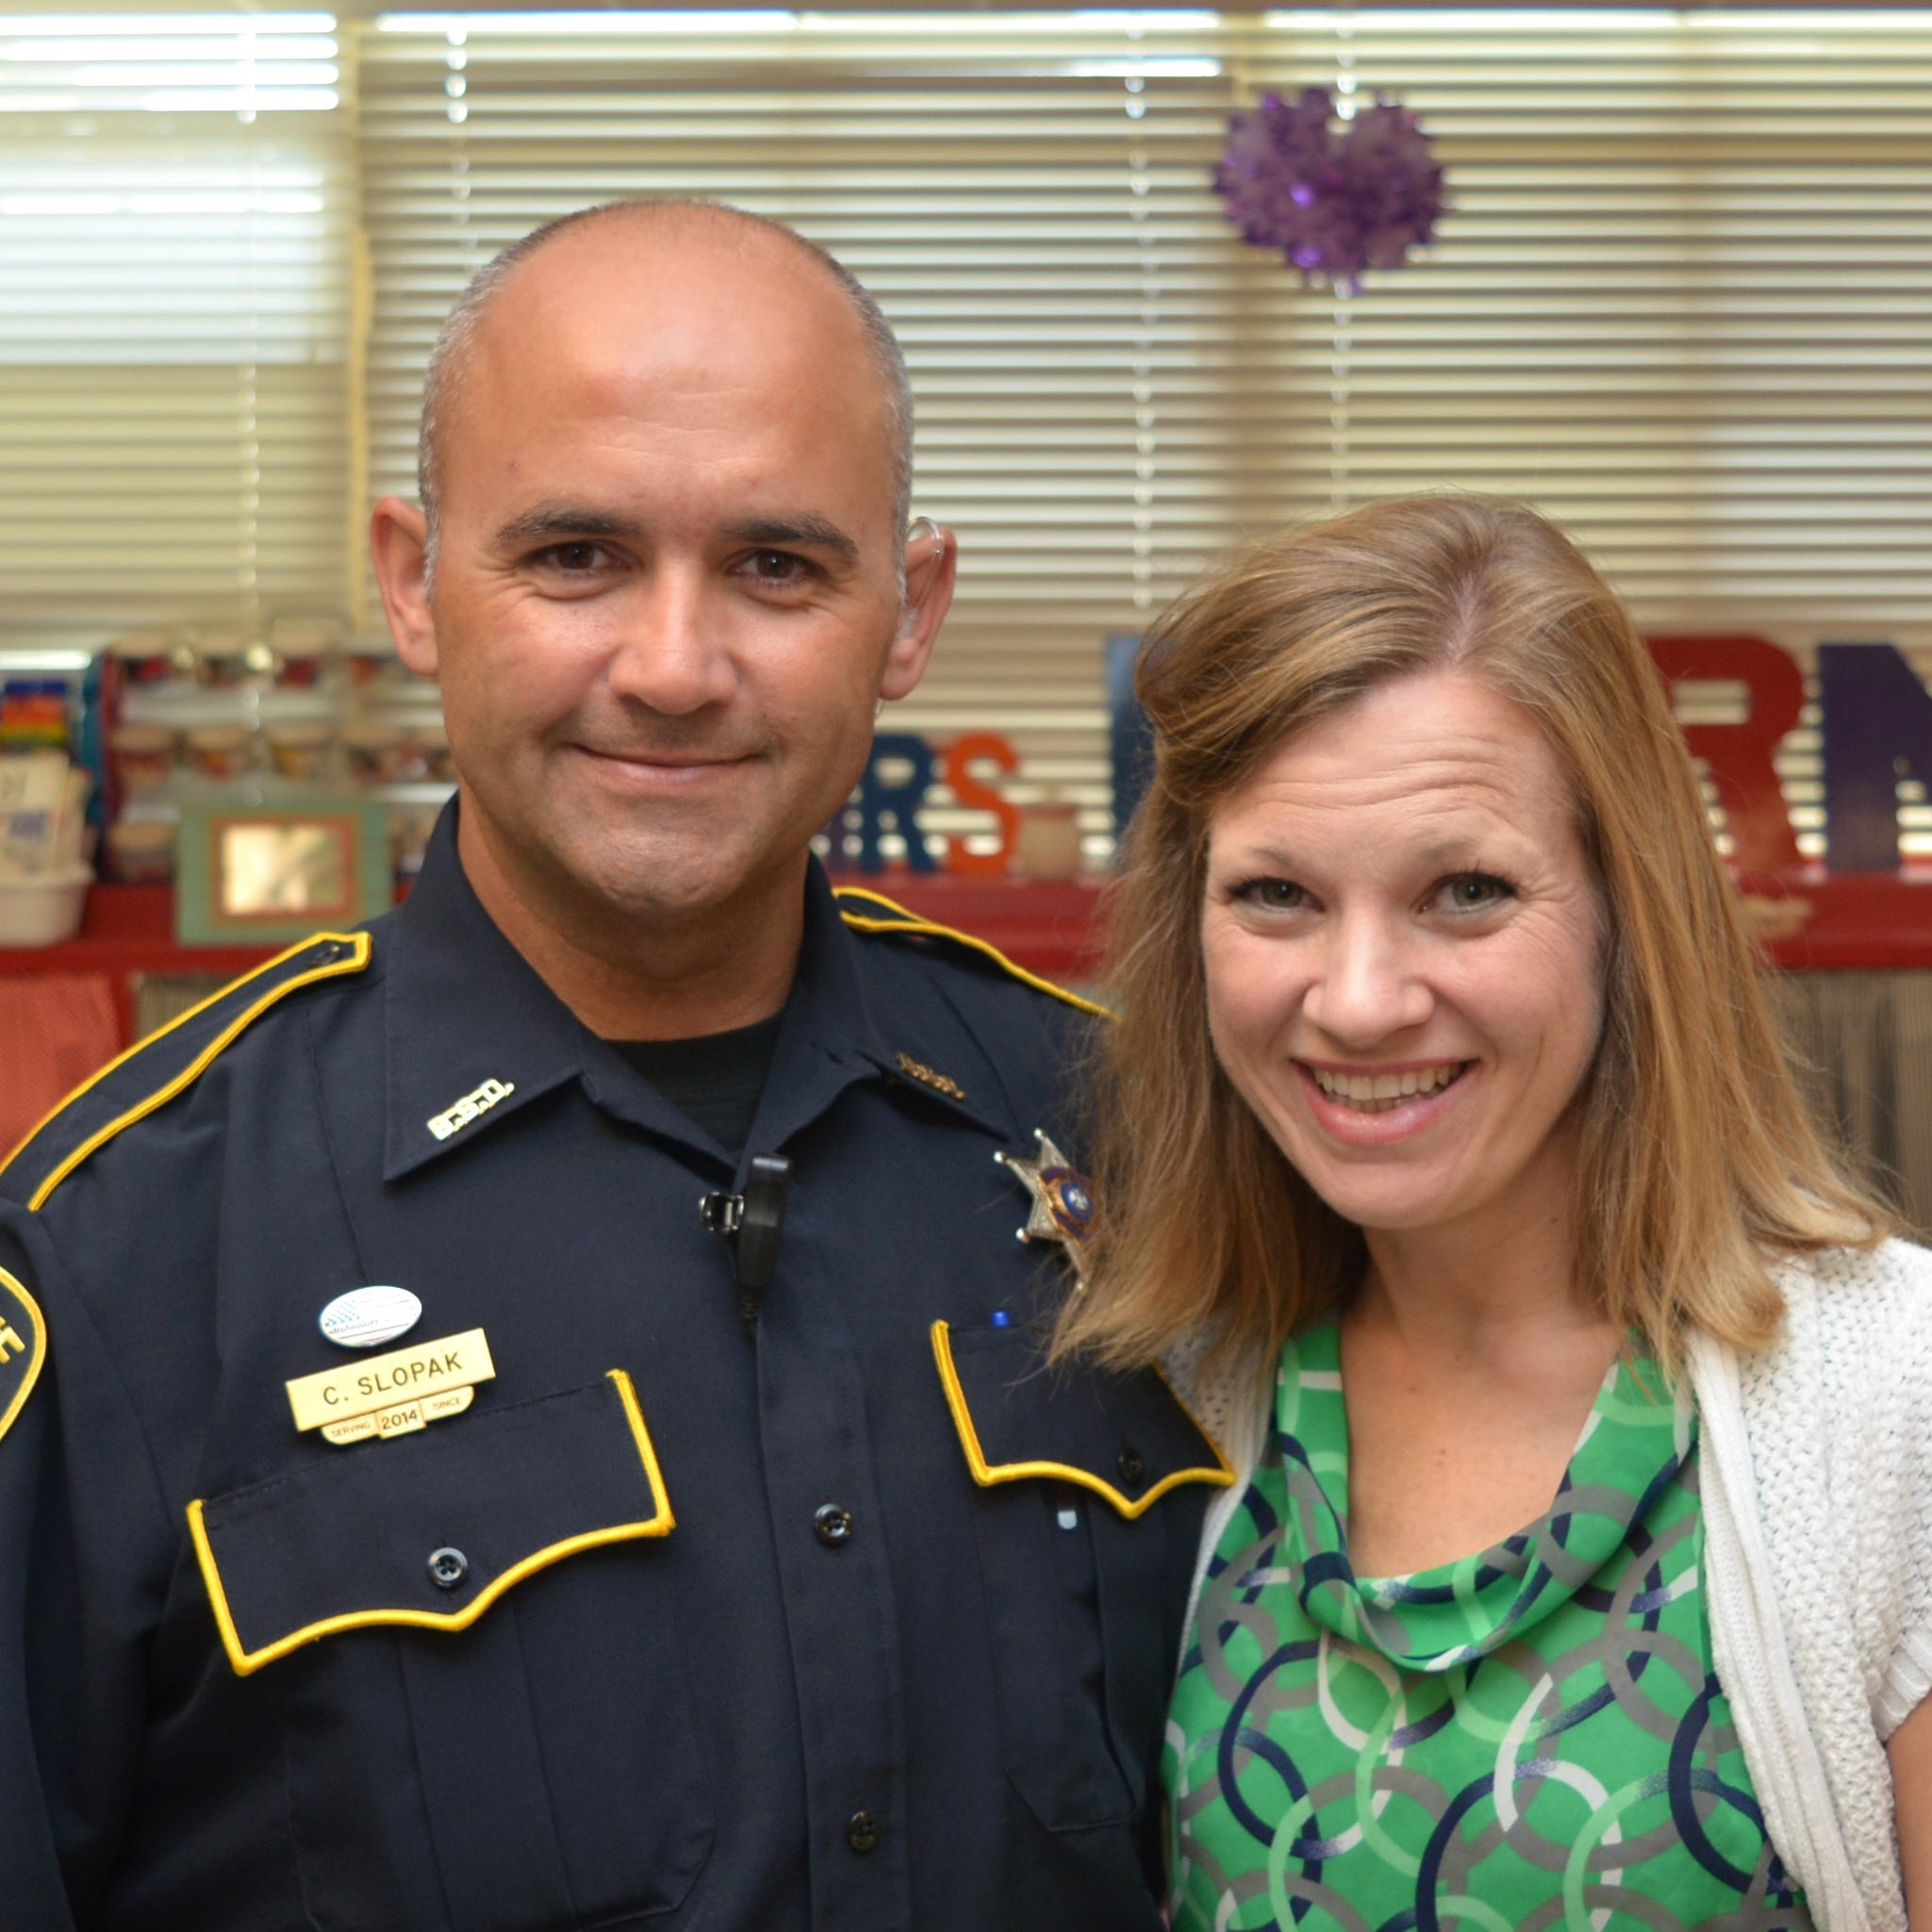 Bossier deputy saves teacher's life on first day of school